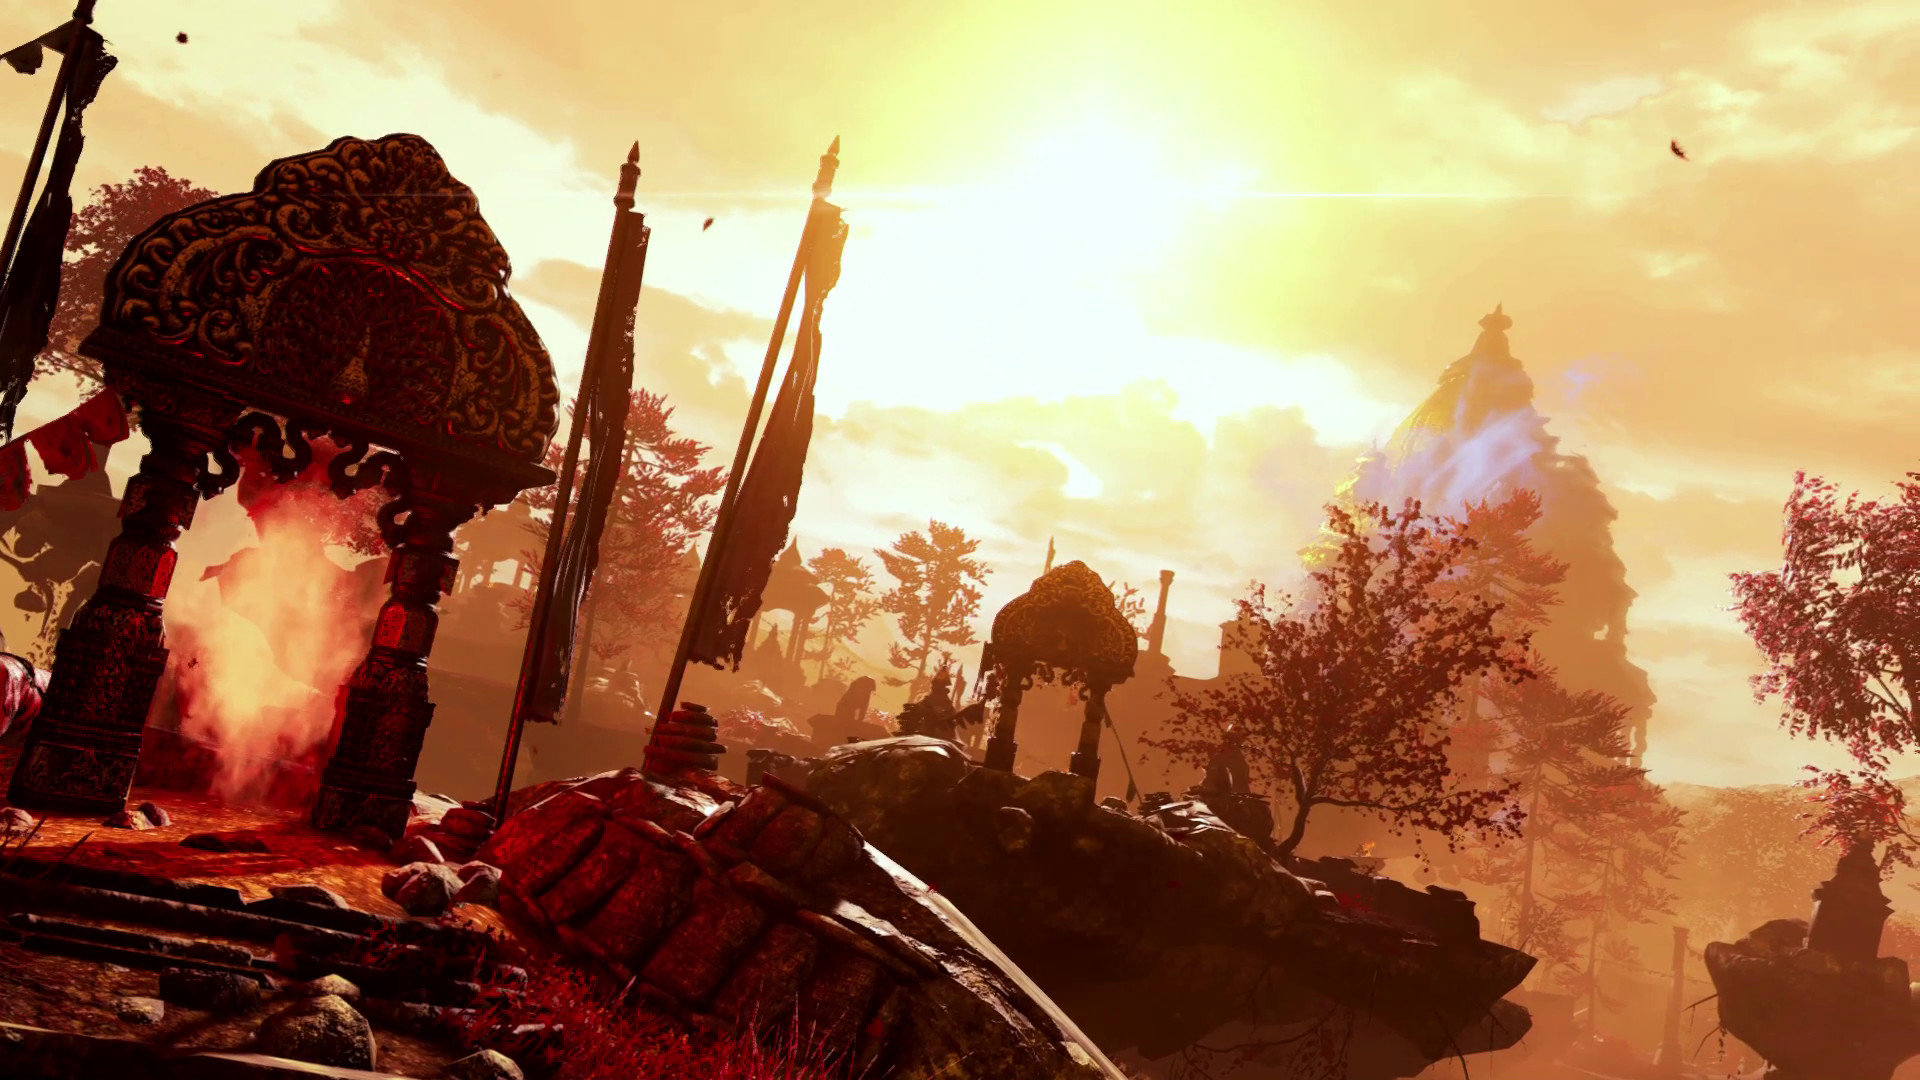 Far Cry 4 Wallpapers 1920x1080 Full Hd 1080p Desktop Backgrounds